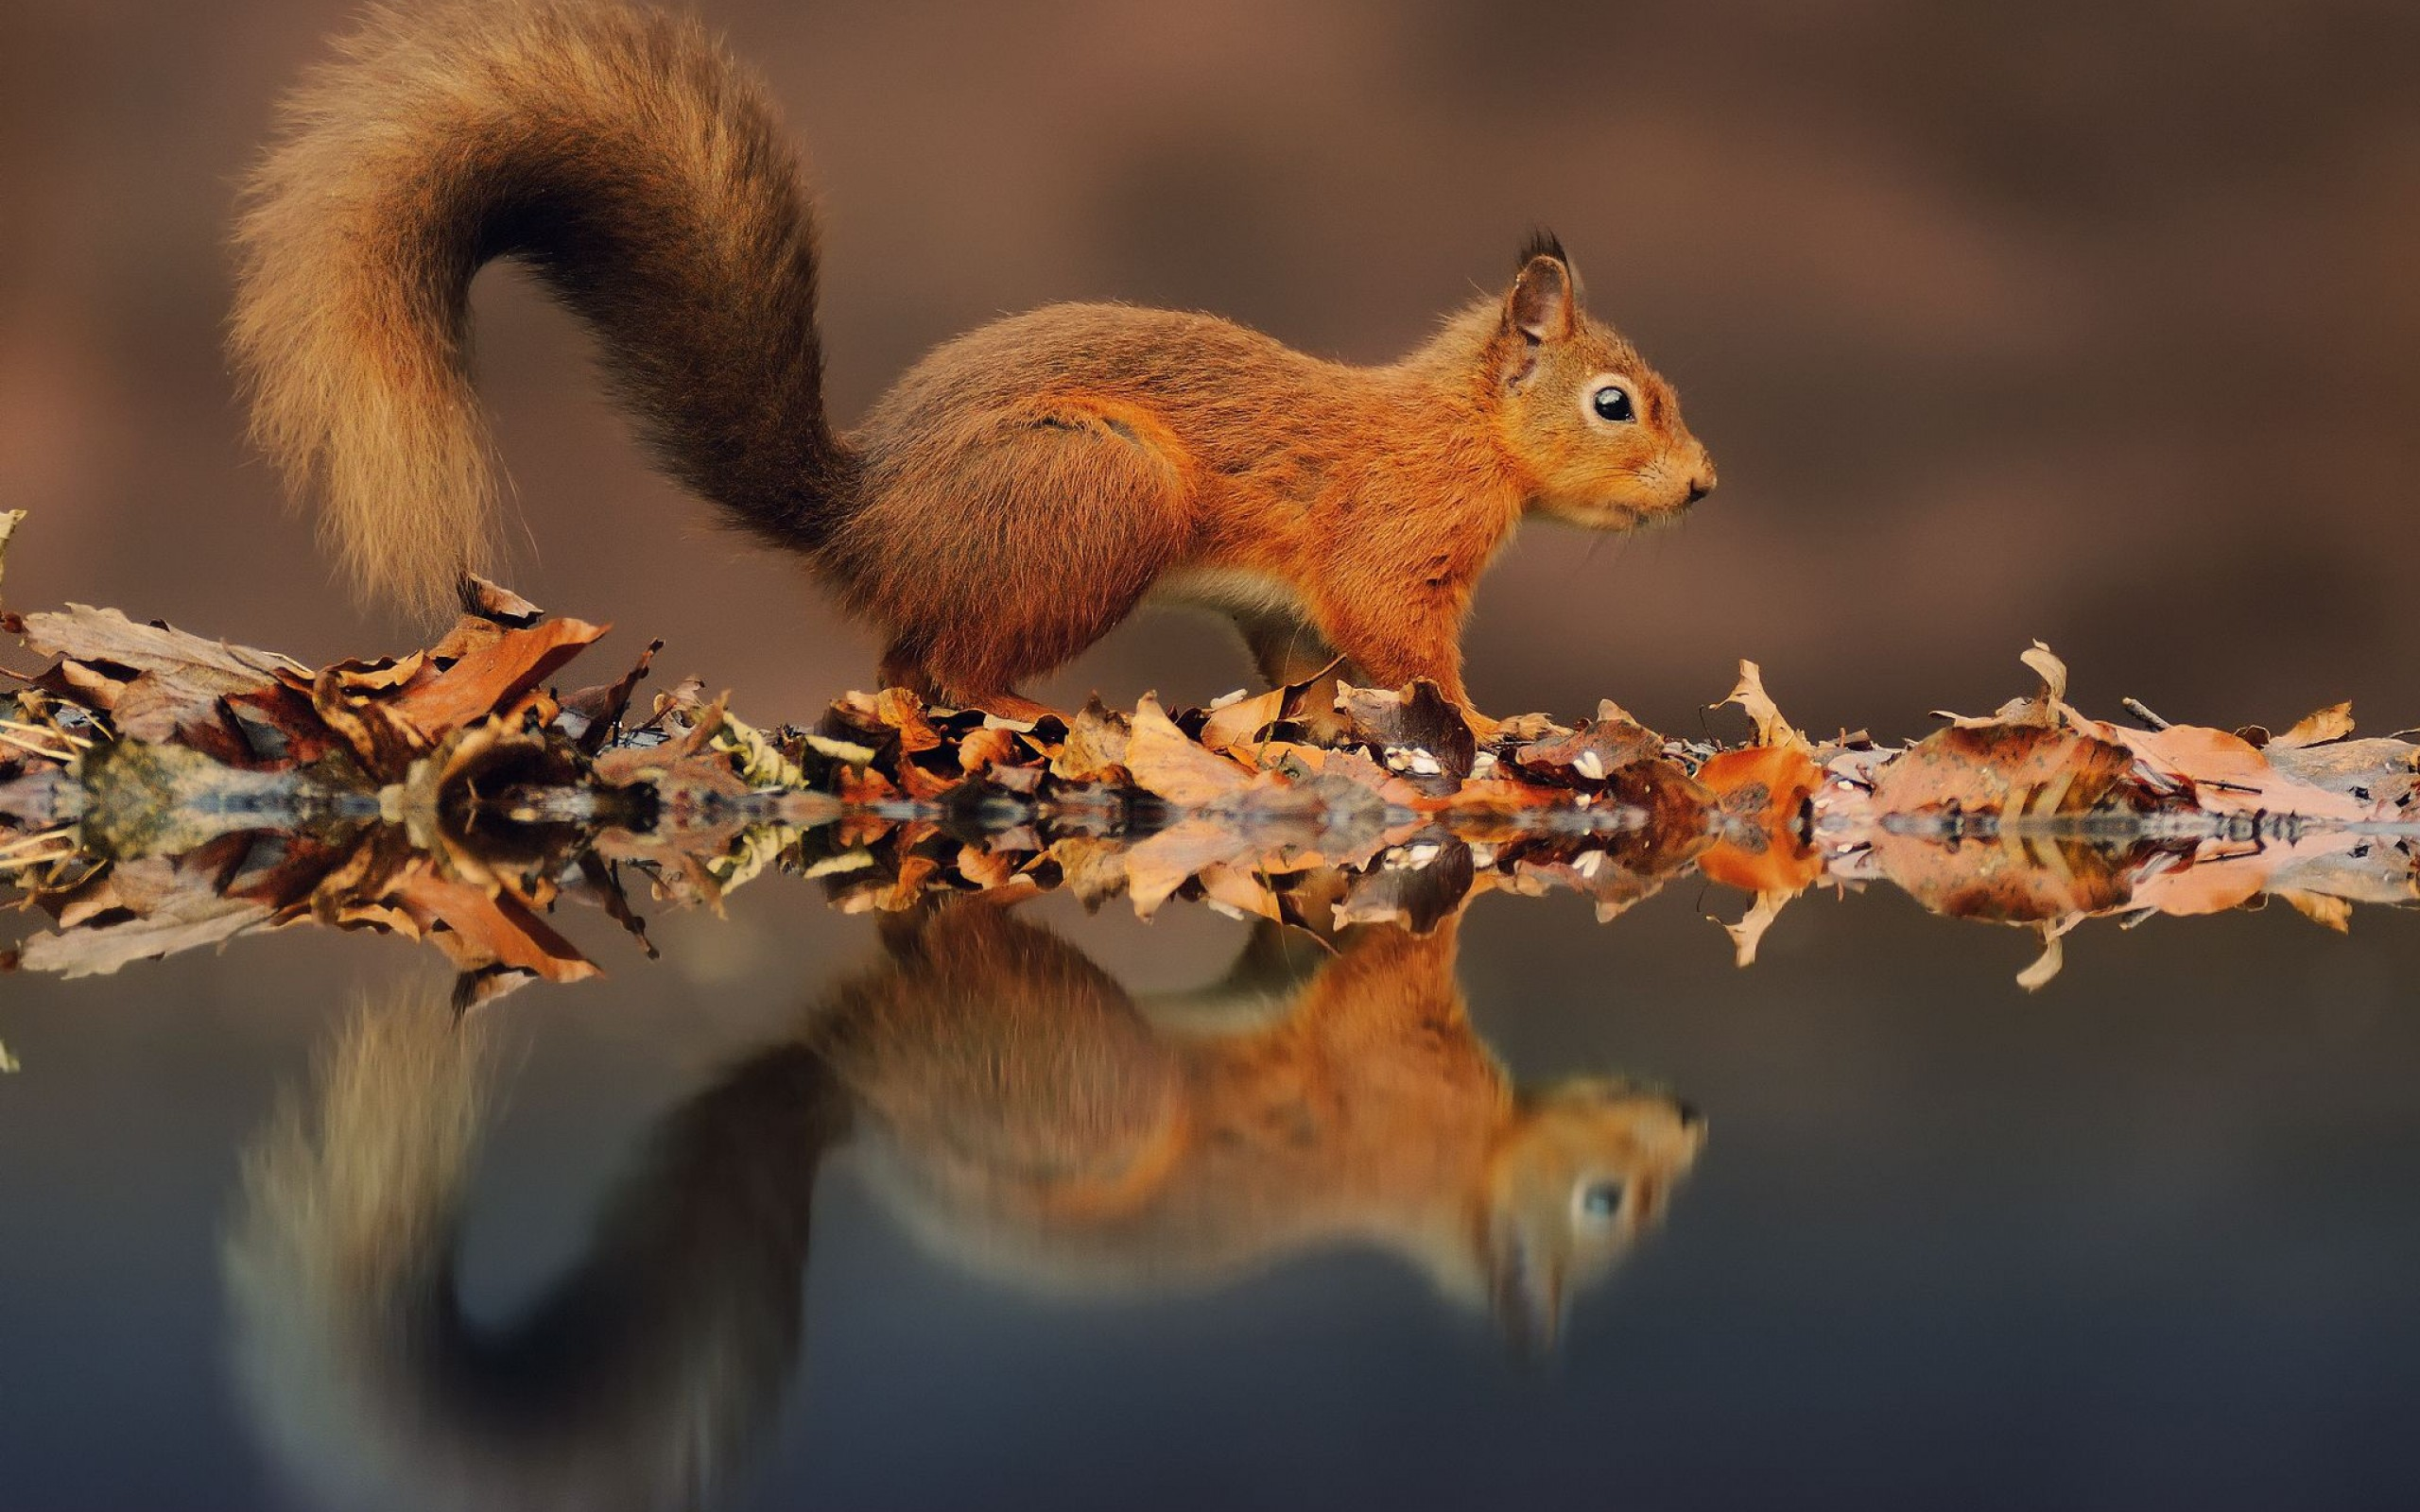 36197 download wallpaper Animals, Squirrel screensavers and pictures for free